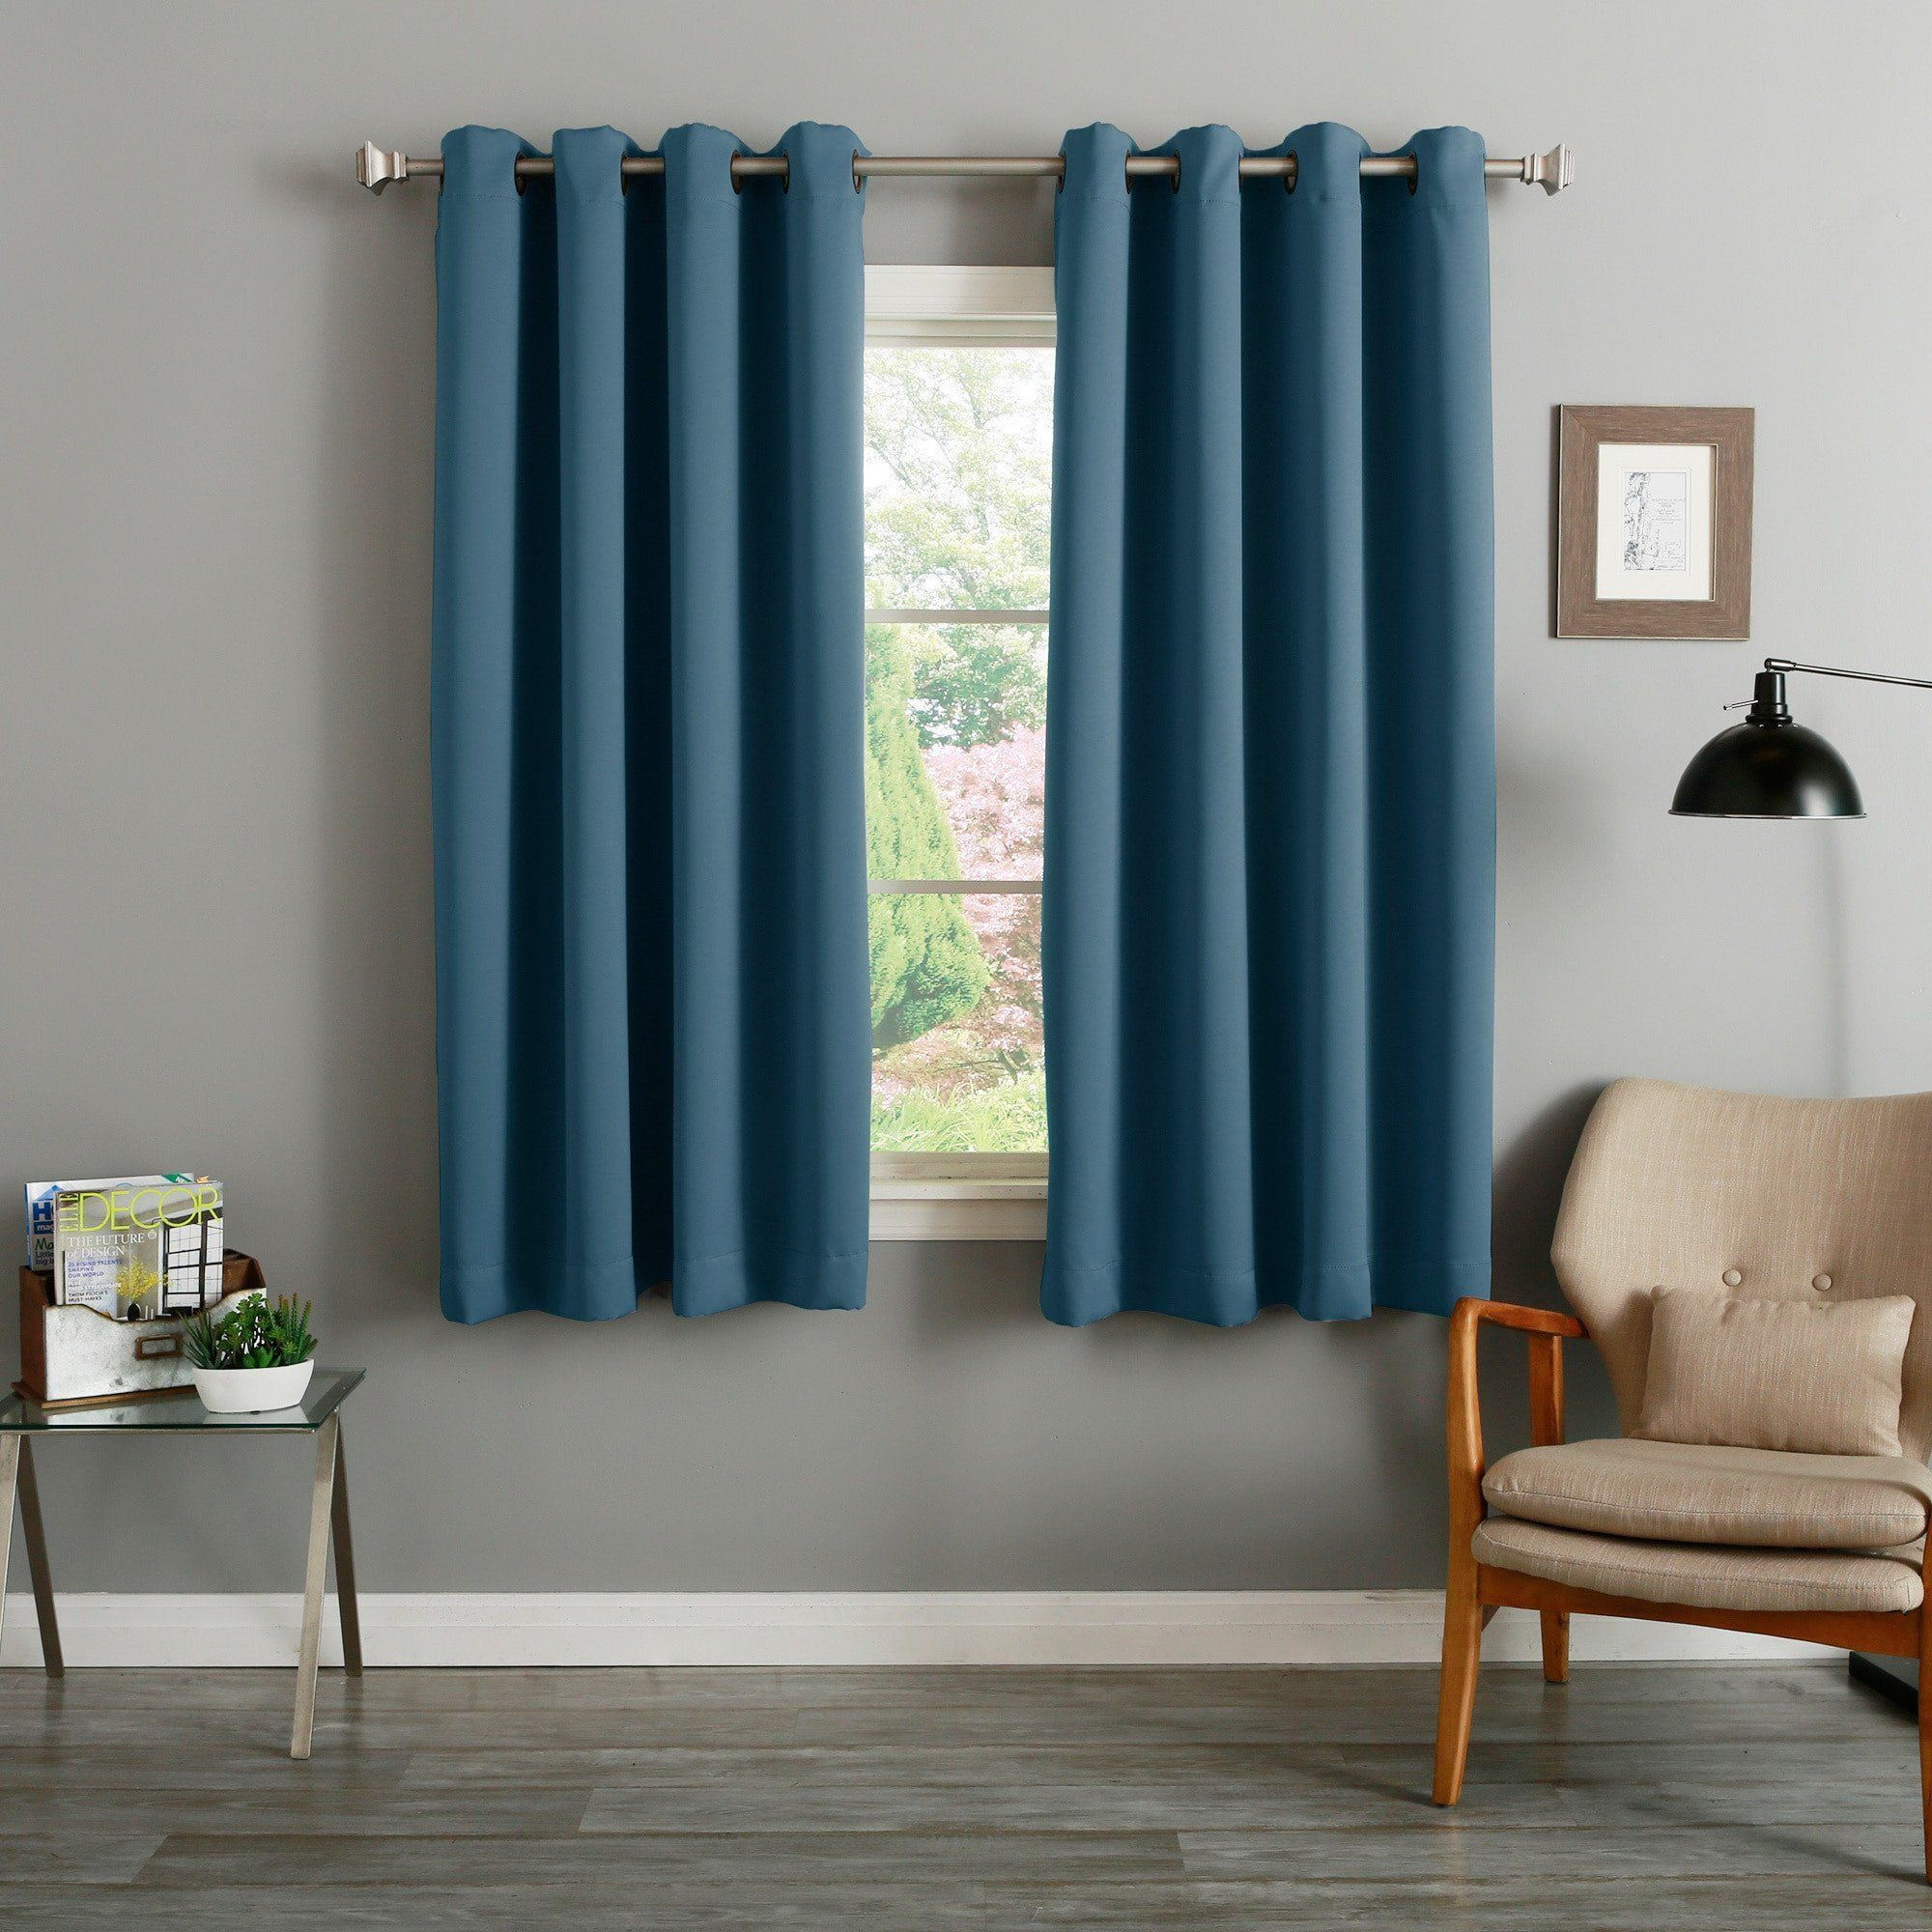 Willow Print Pinch Pleat Sheer Window Curtain Panel Panel Curtains Modern Home Furniture Curtains Living Room